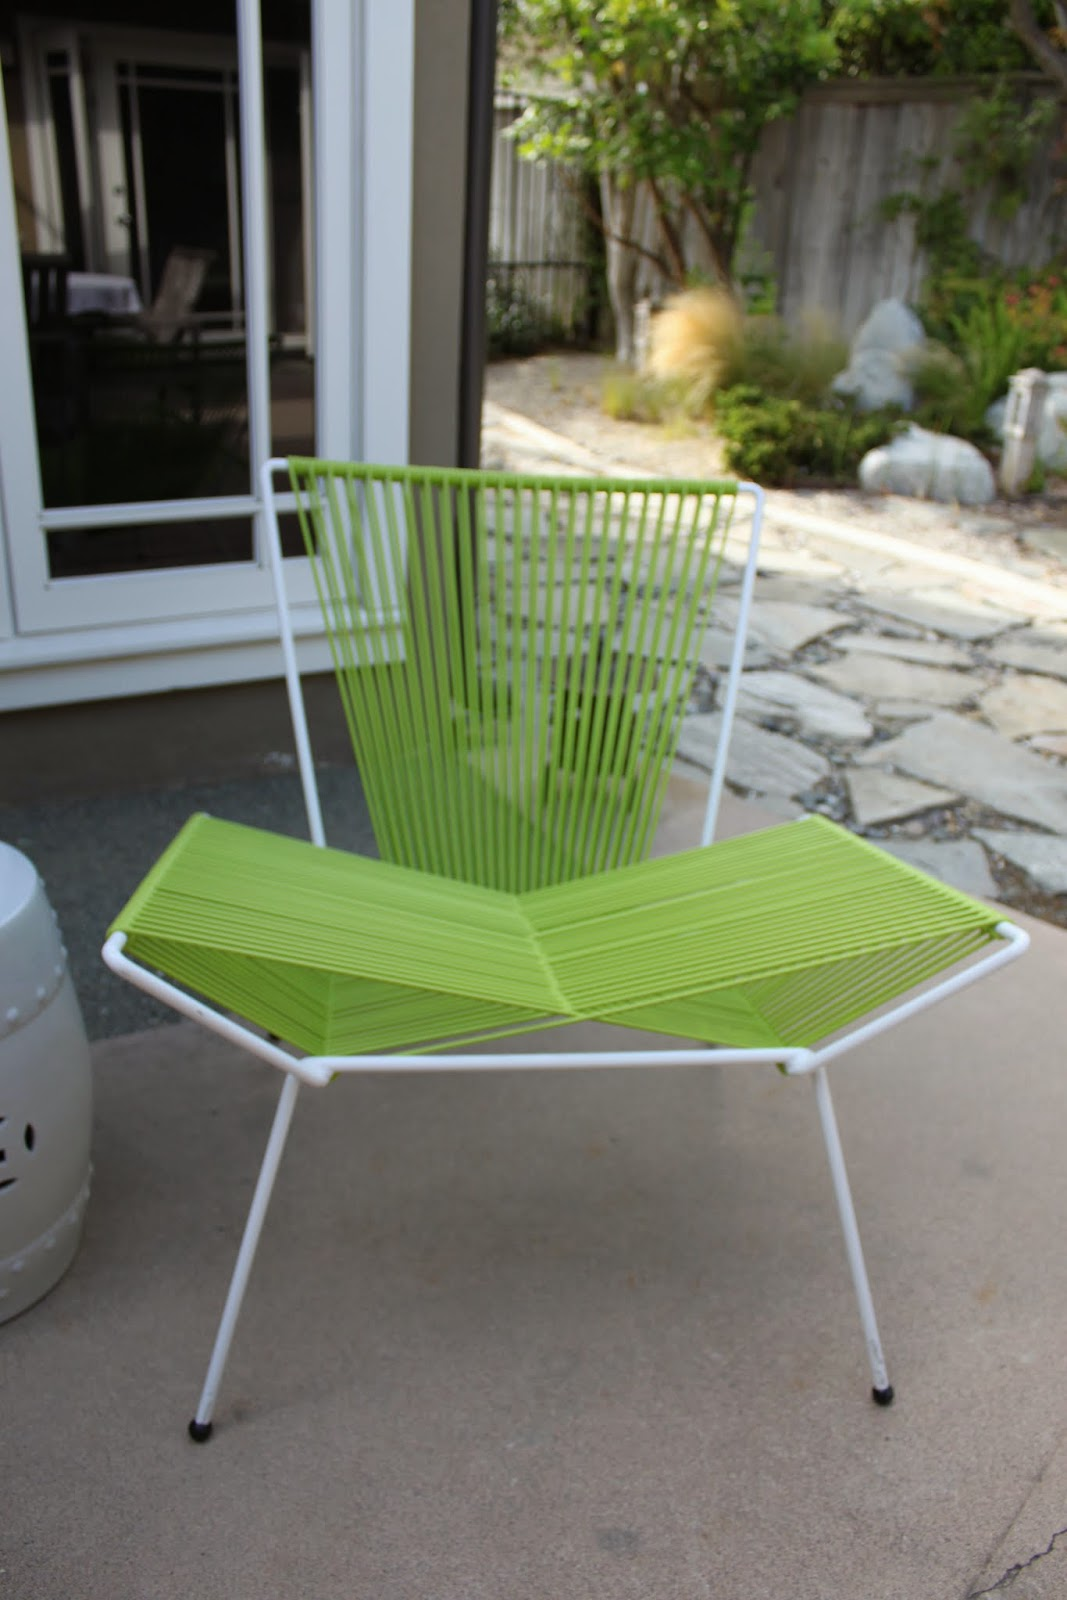 Spiffing Up A Mid-century Modern Patio